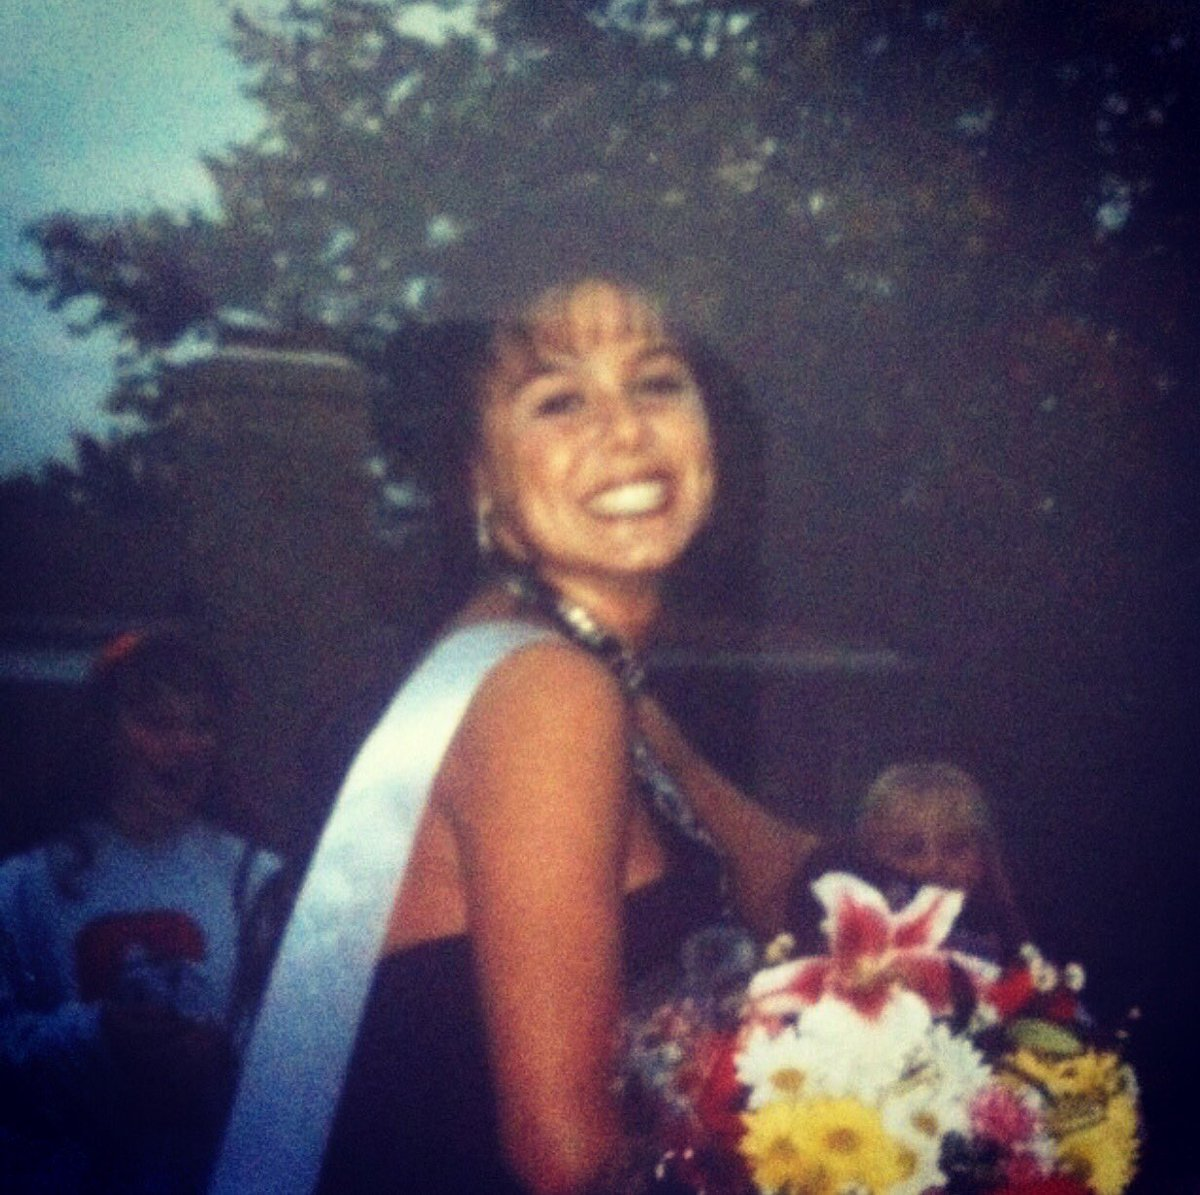 #TBT cheese face :) homecoming queen 👑 DMBs9TLhNr